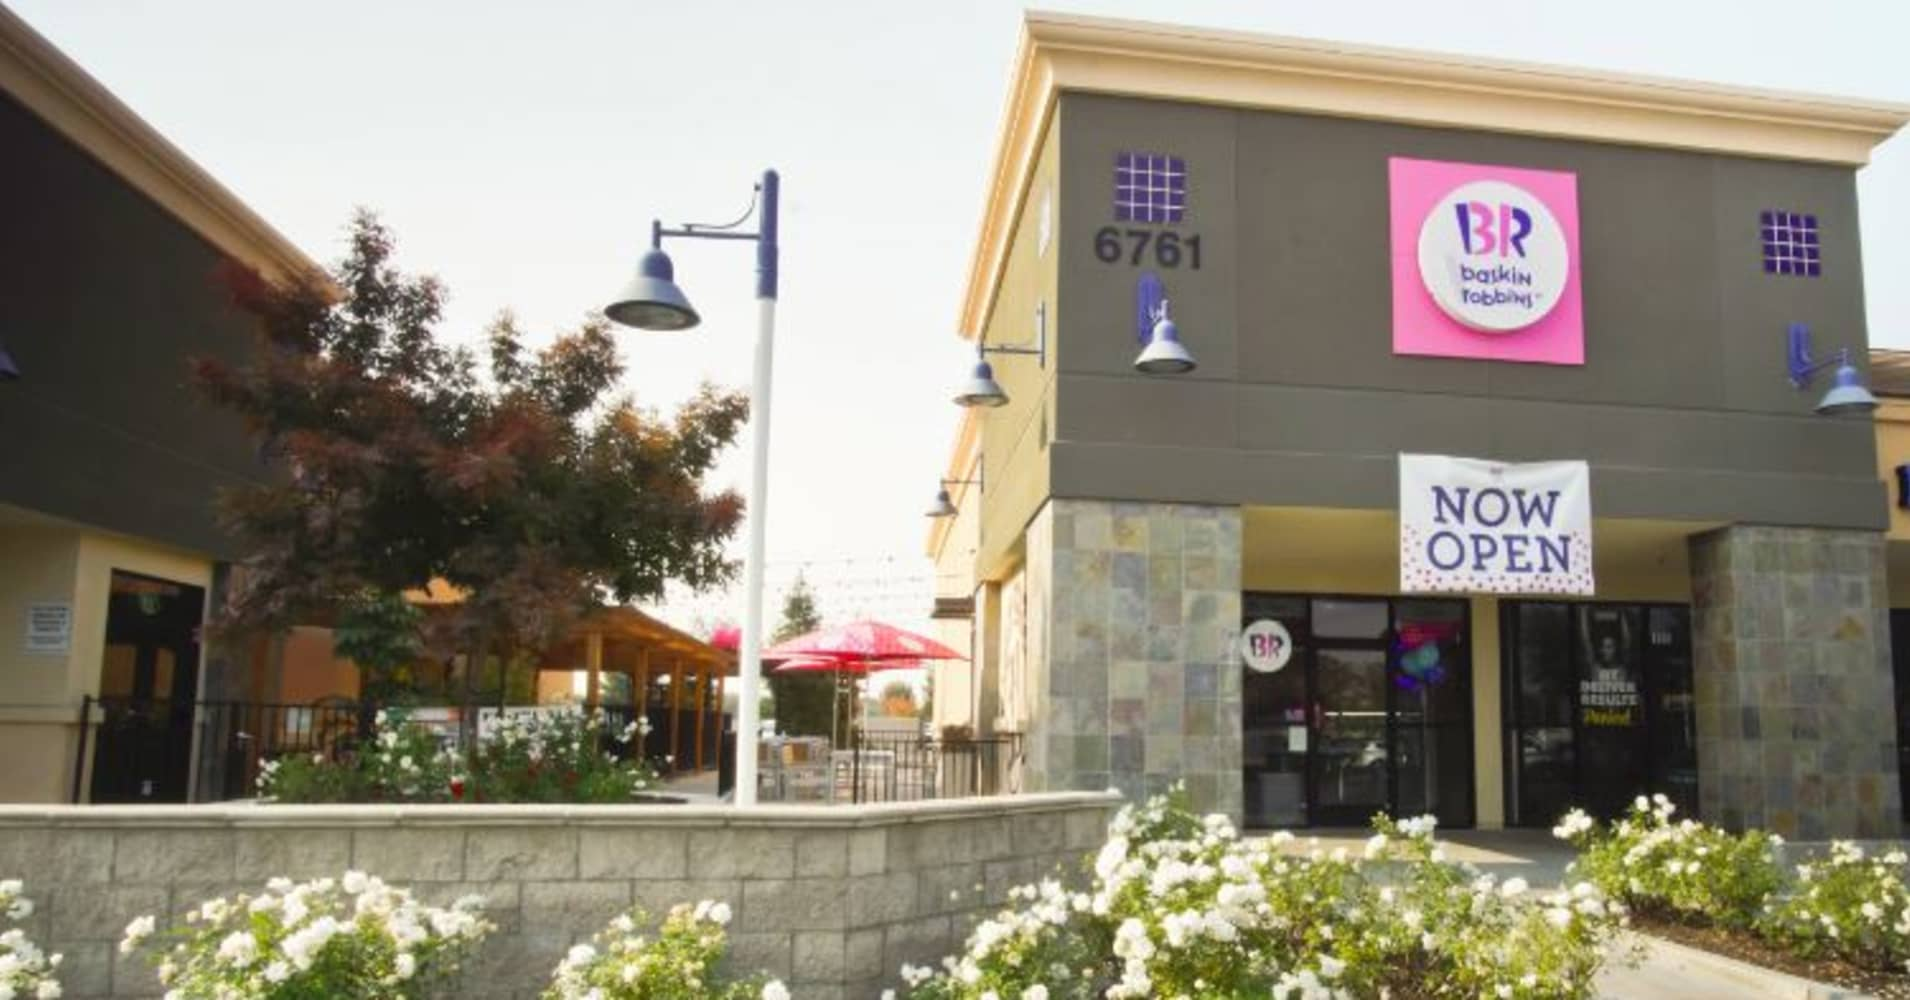 Here is a look at the new store design Baskin-Robbins is testing